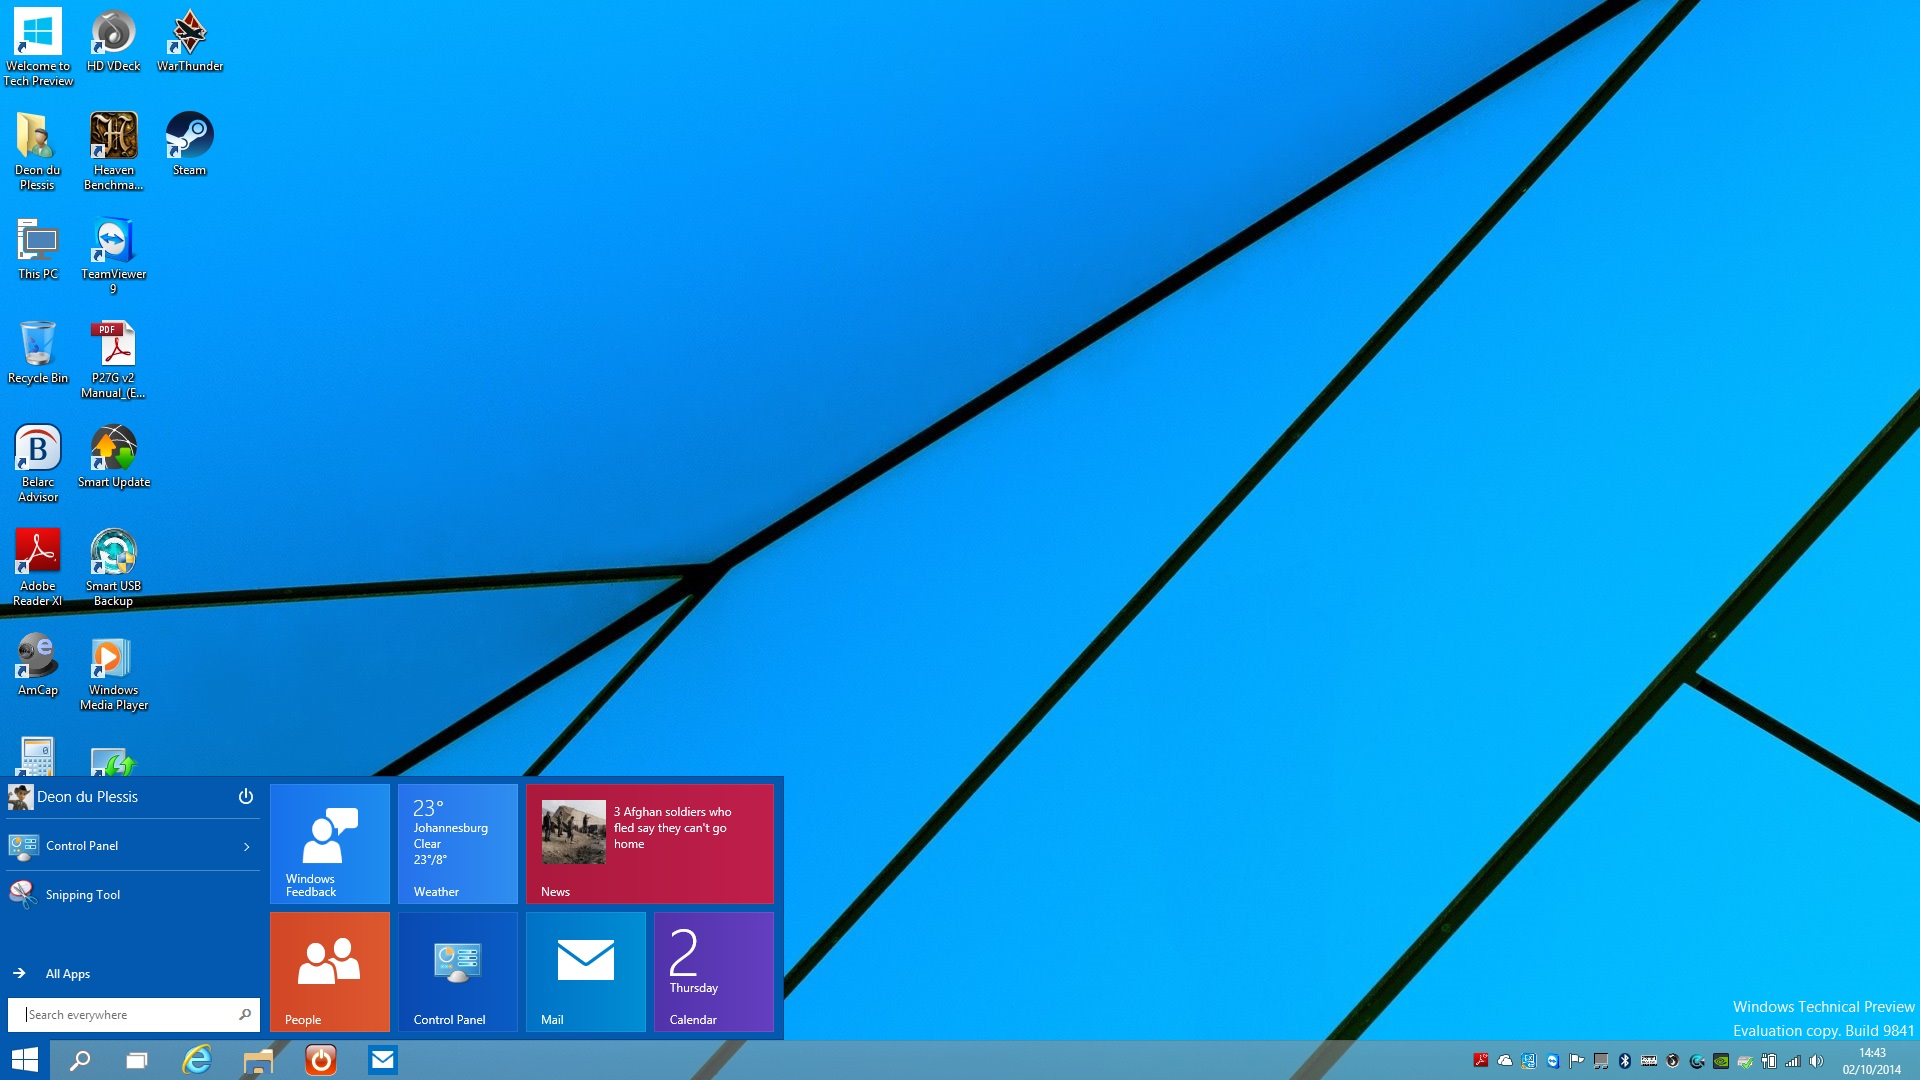 HANDS-ON] Getting started with Windows 10 - htxt africa